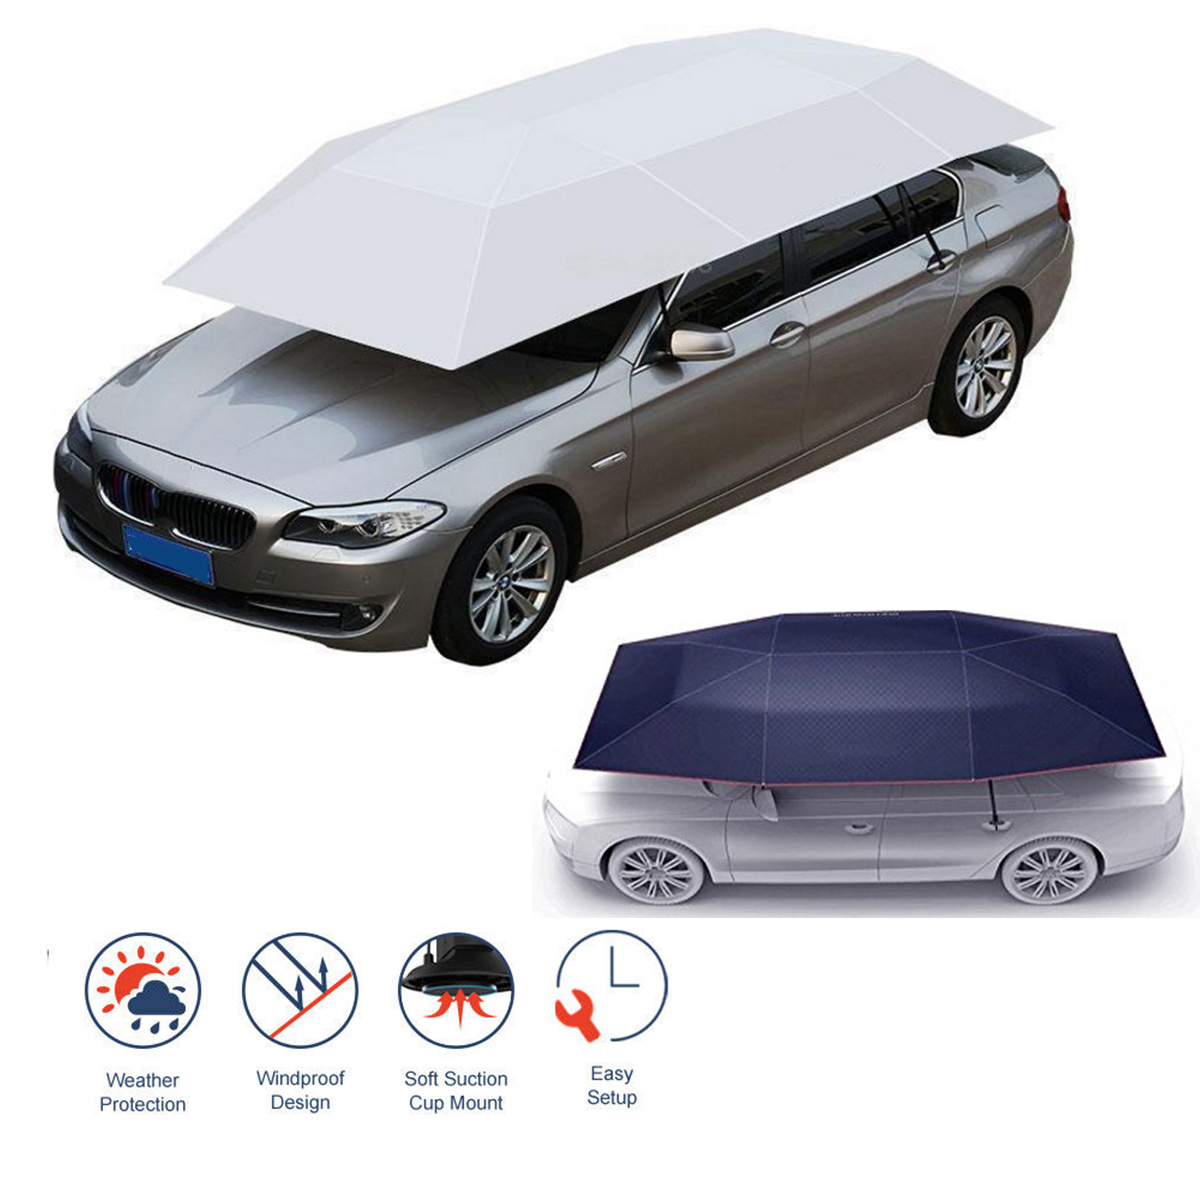 Semi-automatico Outdoor Copertura del Tetto Auto Tenda Ombrello Parasole Anti-Uv Kit Per Auto Ombrello Tenda Da Sole Auto Ombrello